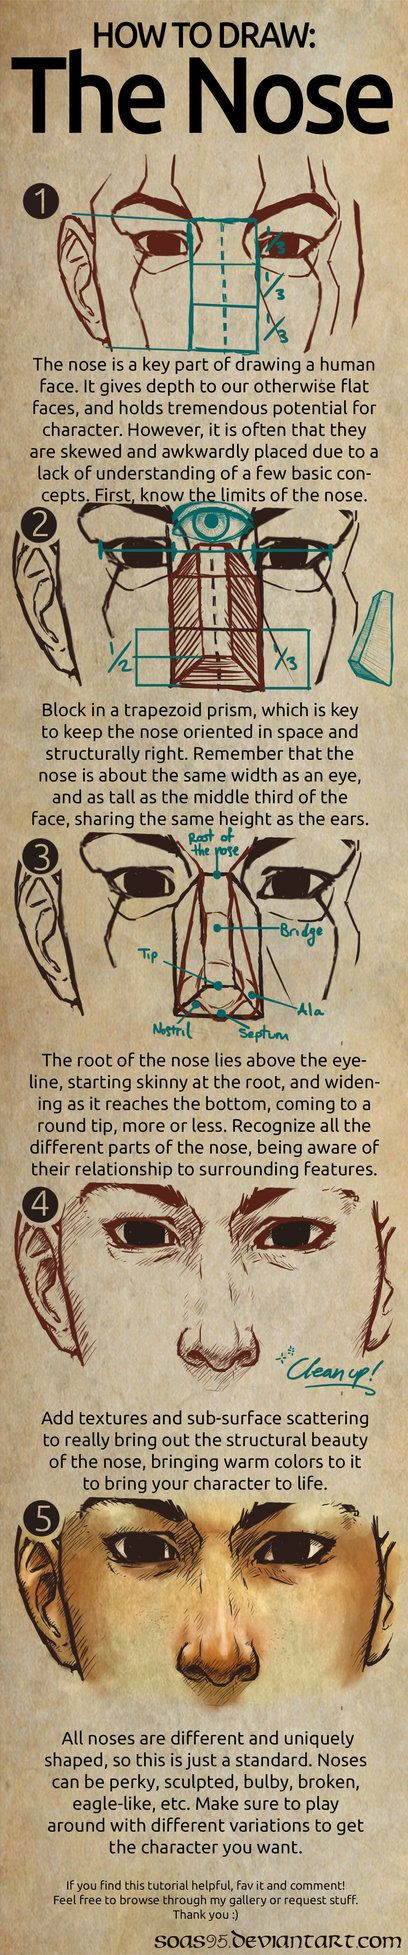 Human Nose- TUTORIAL by soas95 ✤ || CHARACTER DESIGN REFERENCES |